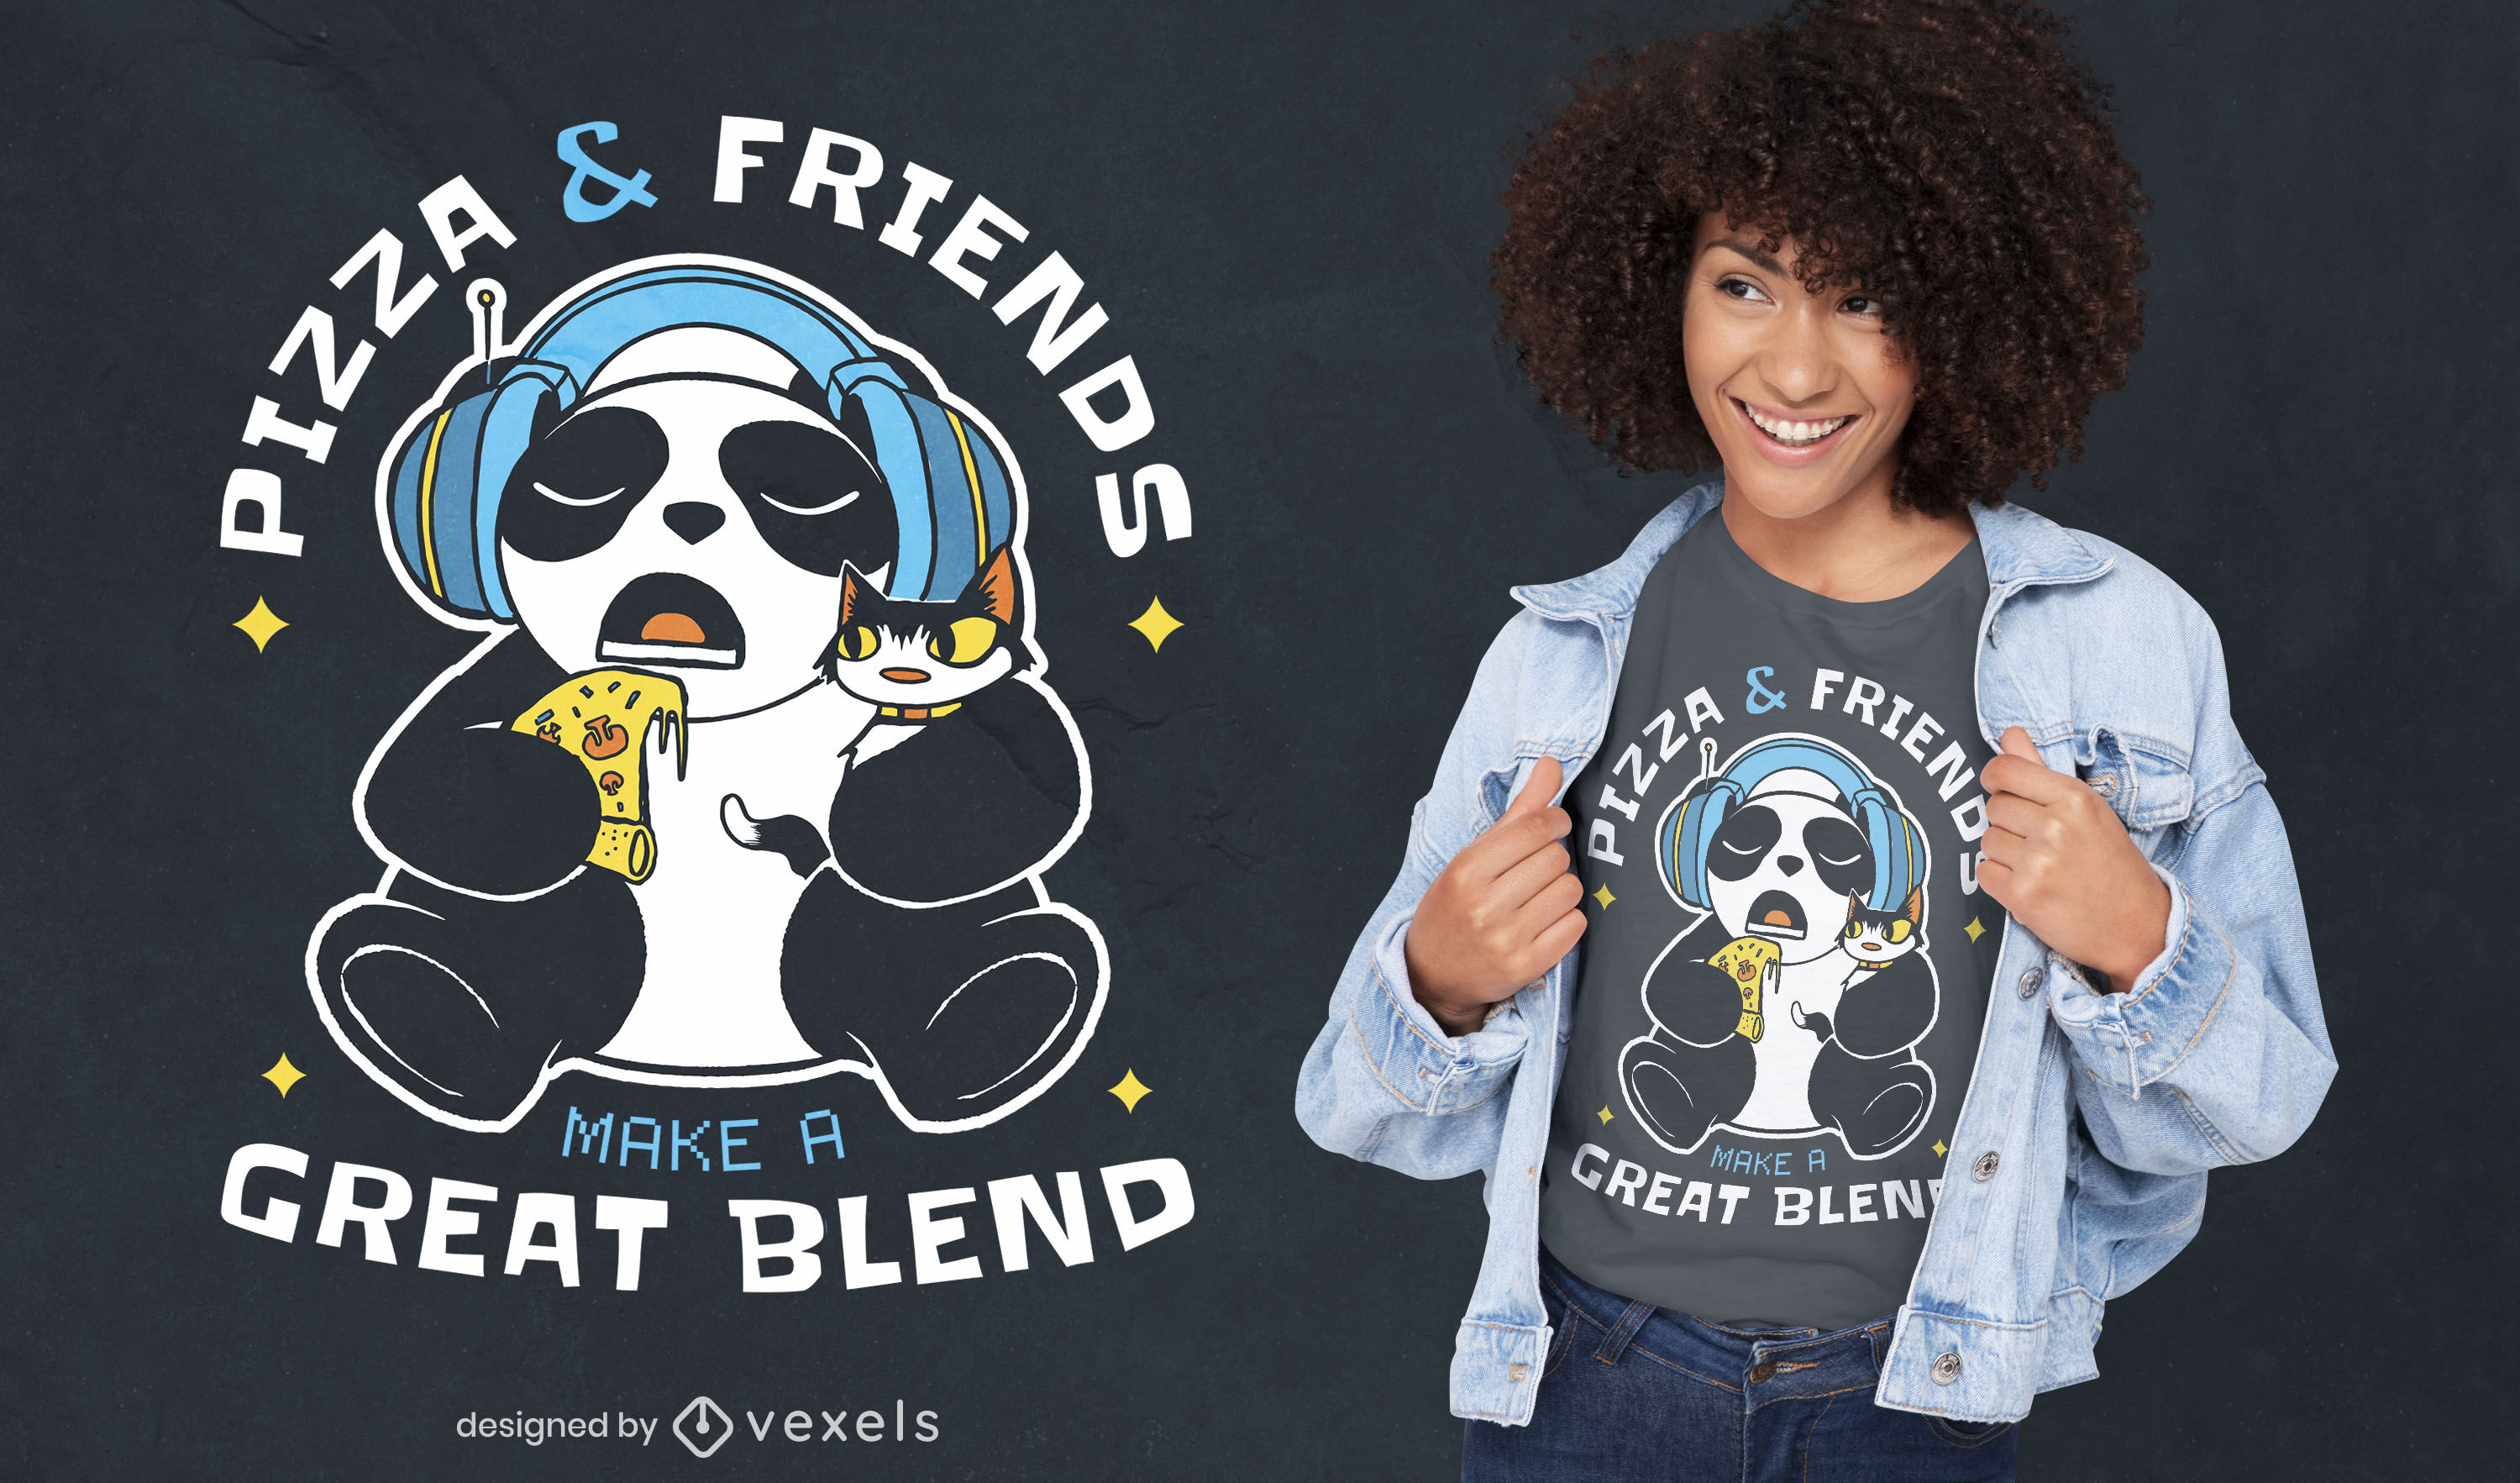 Pizza and friends t-shirt design